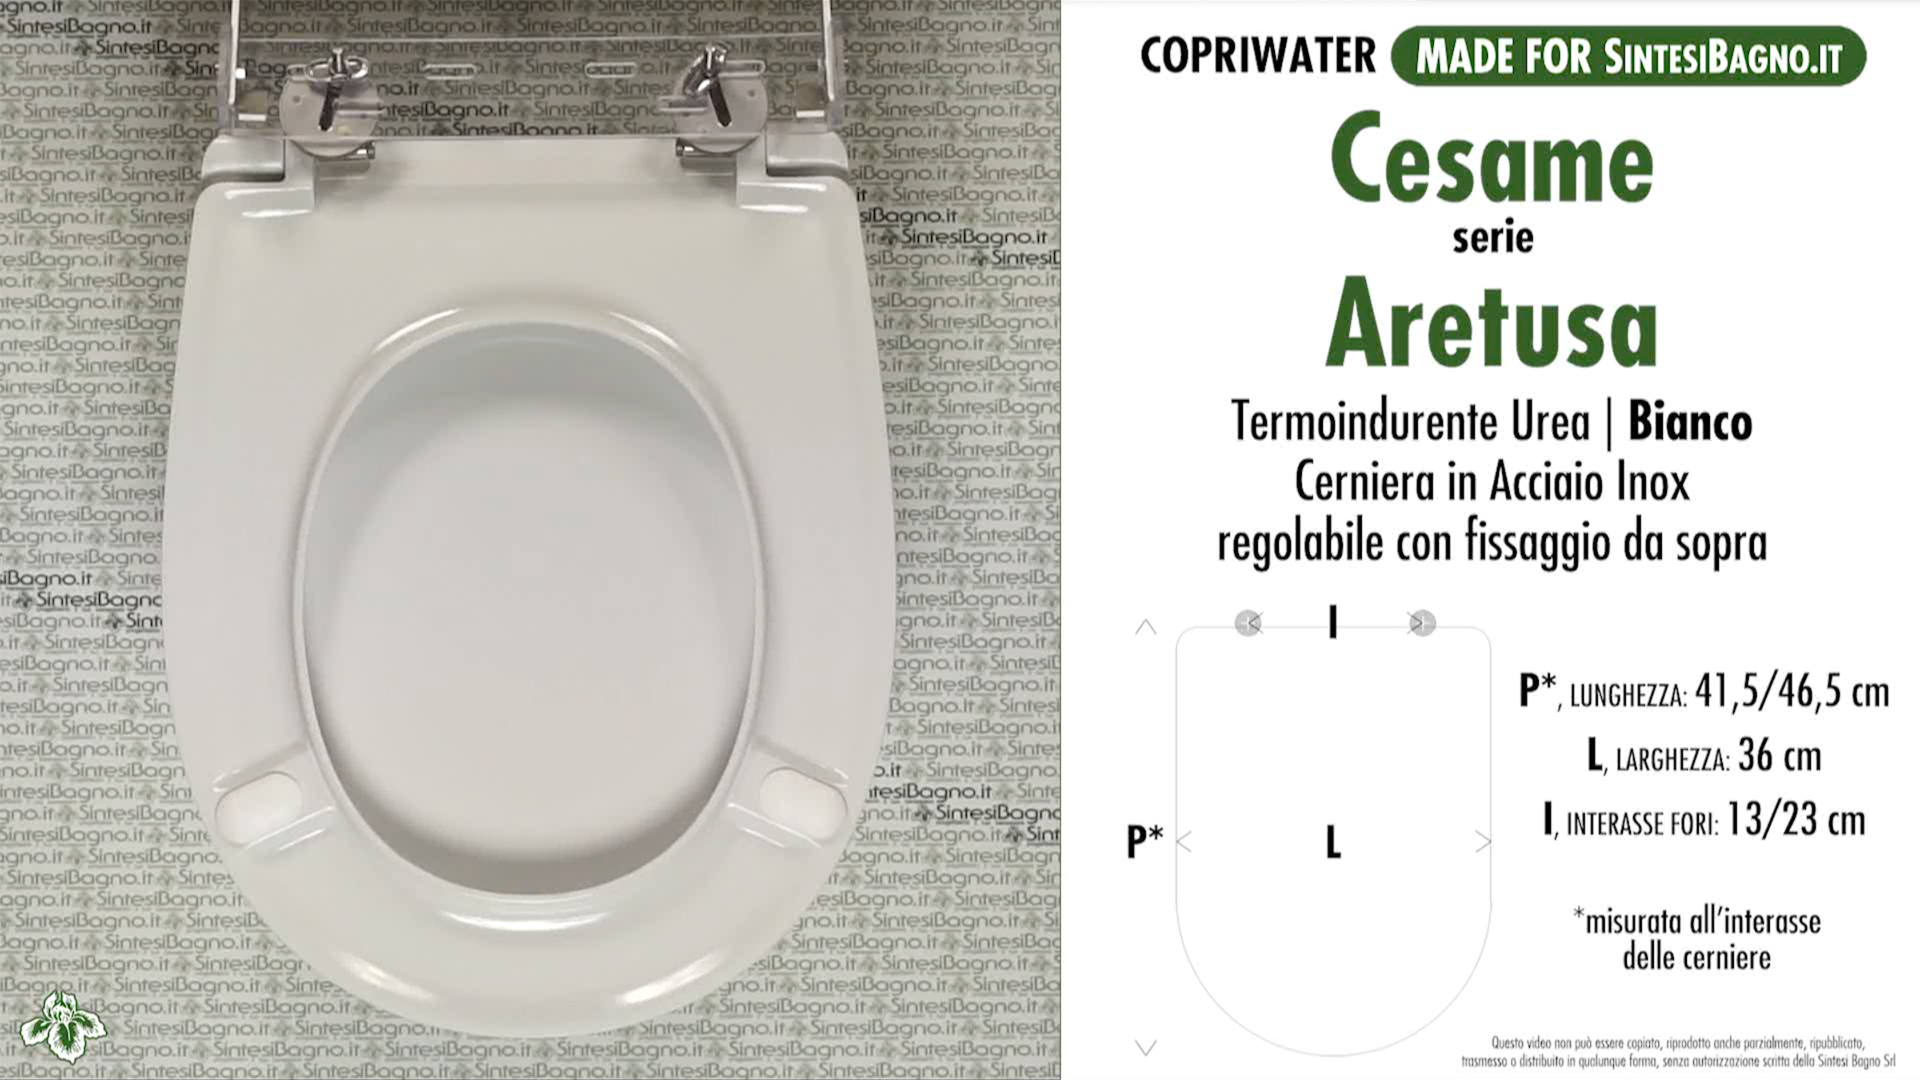 Sedile Wc Cesame Aretusa.Wc Seat Made For Wc Aretusa Cesame Model Soft Close Plus Quality Duroplast Sintesibagno Shop Online